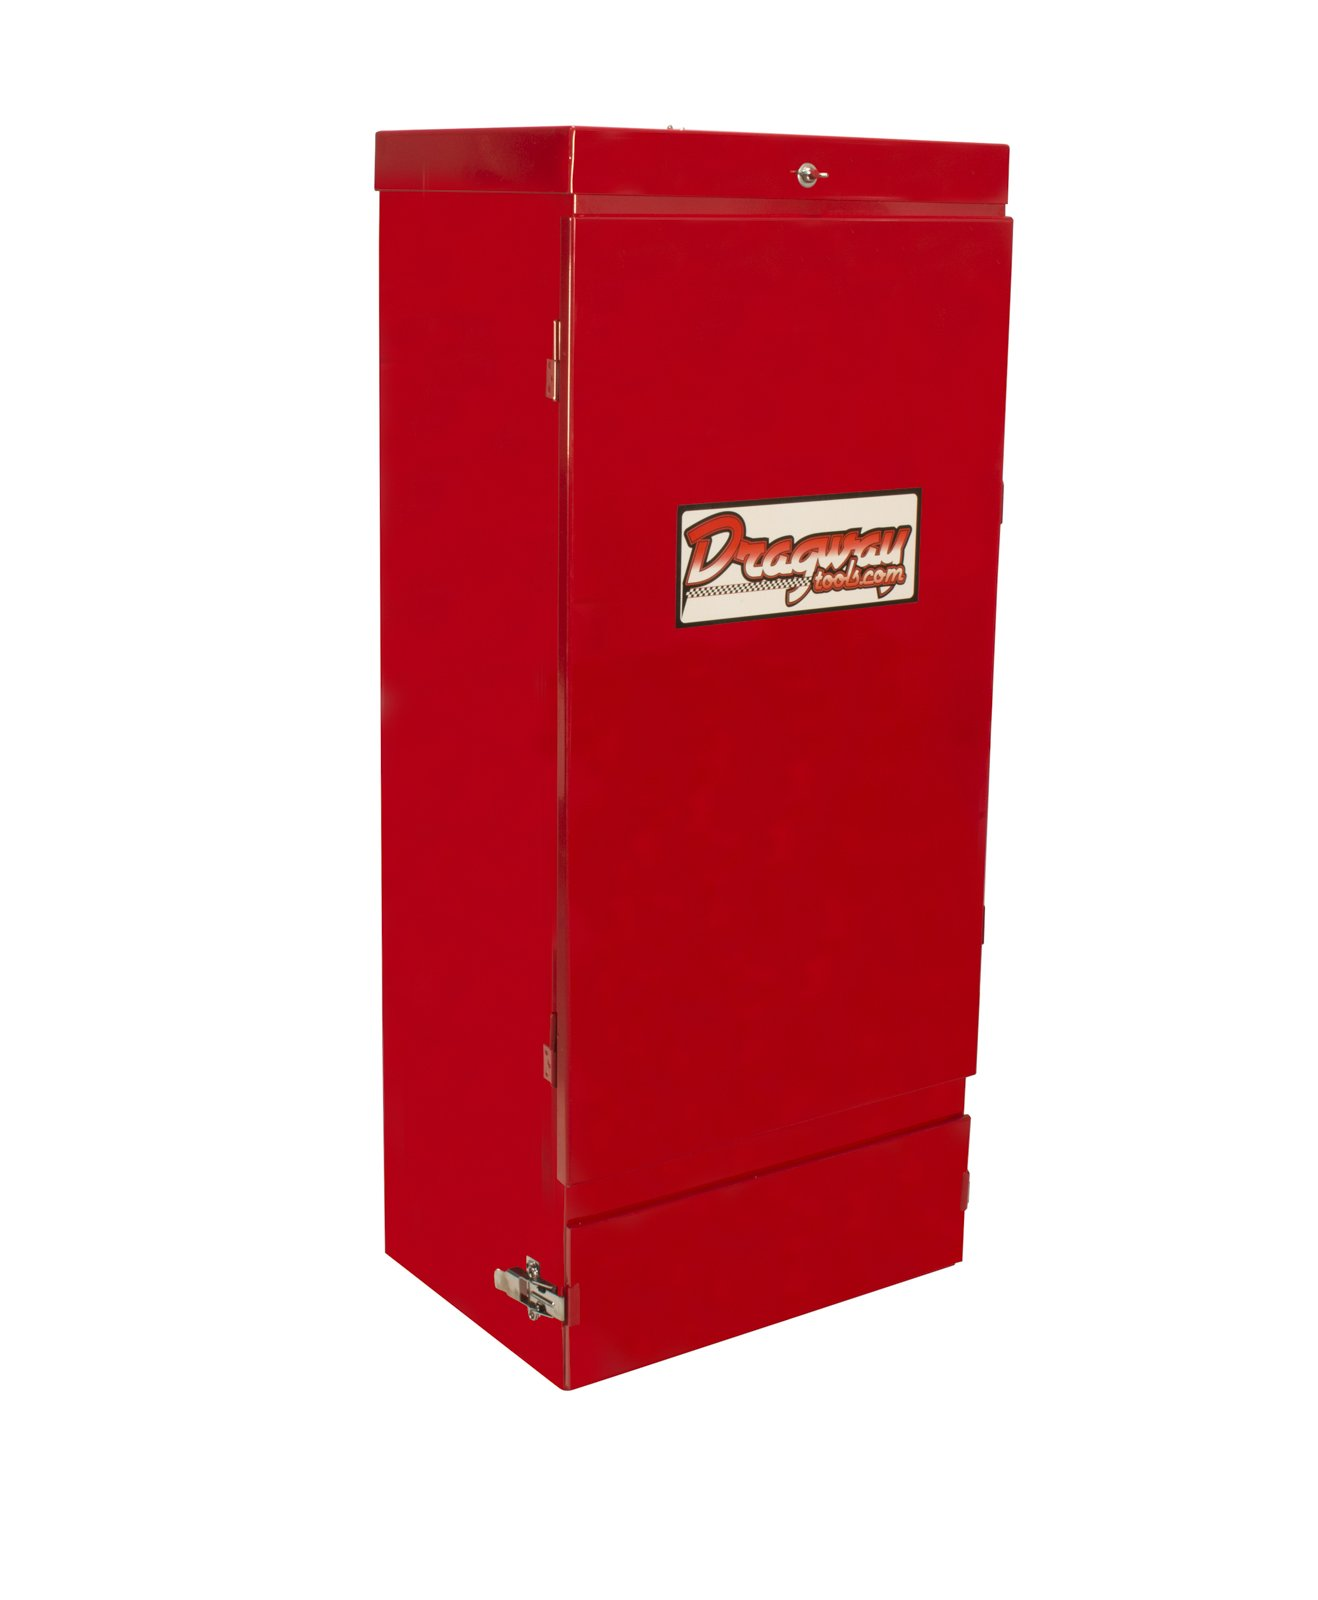 Dragway Tools Dust Collector For Model 60, 90, 110, 260 Sandblasting Cabinets